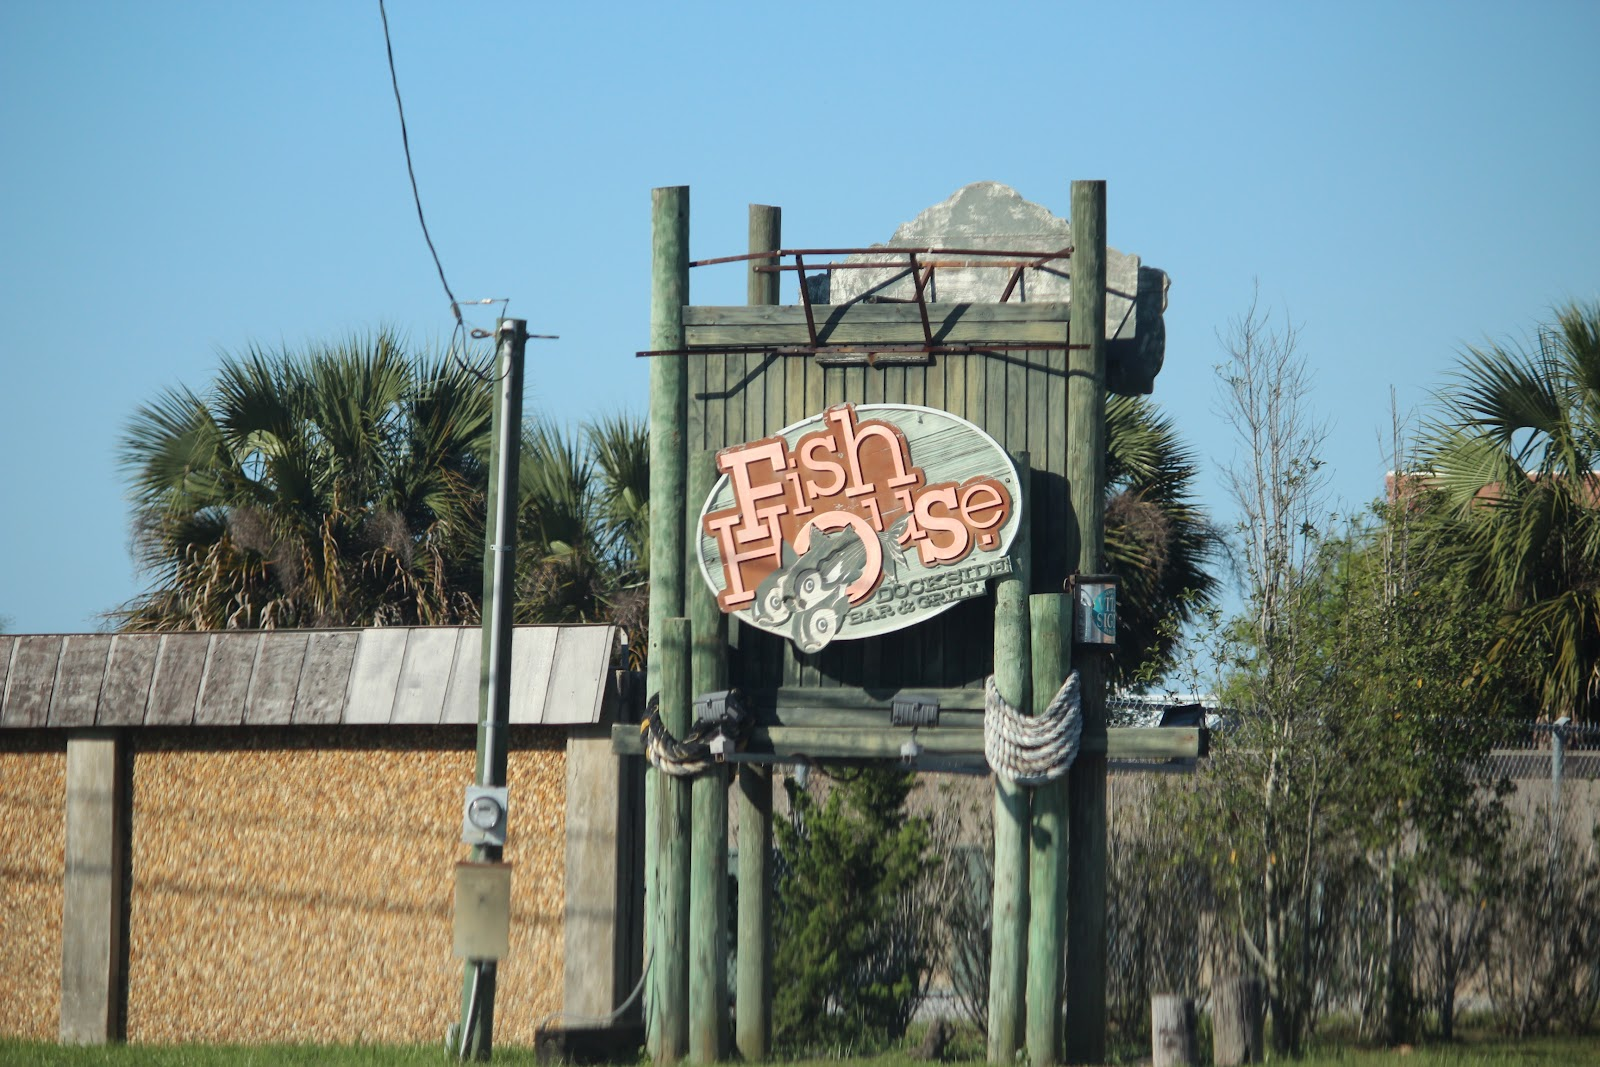 Love to live in pensacola florida june 2012 for The fish house pensacola fl